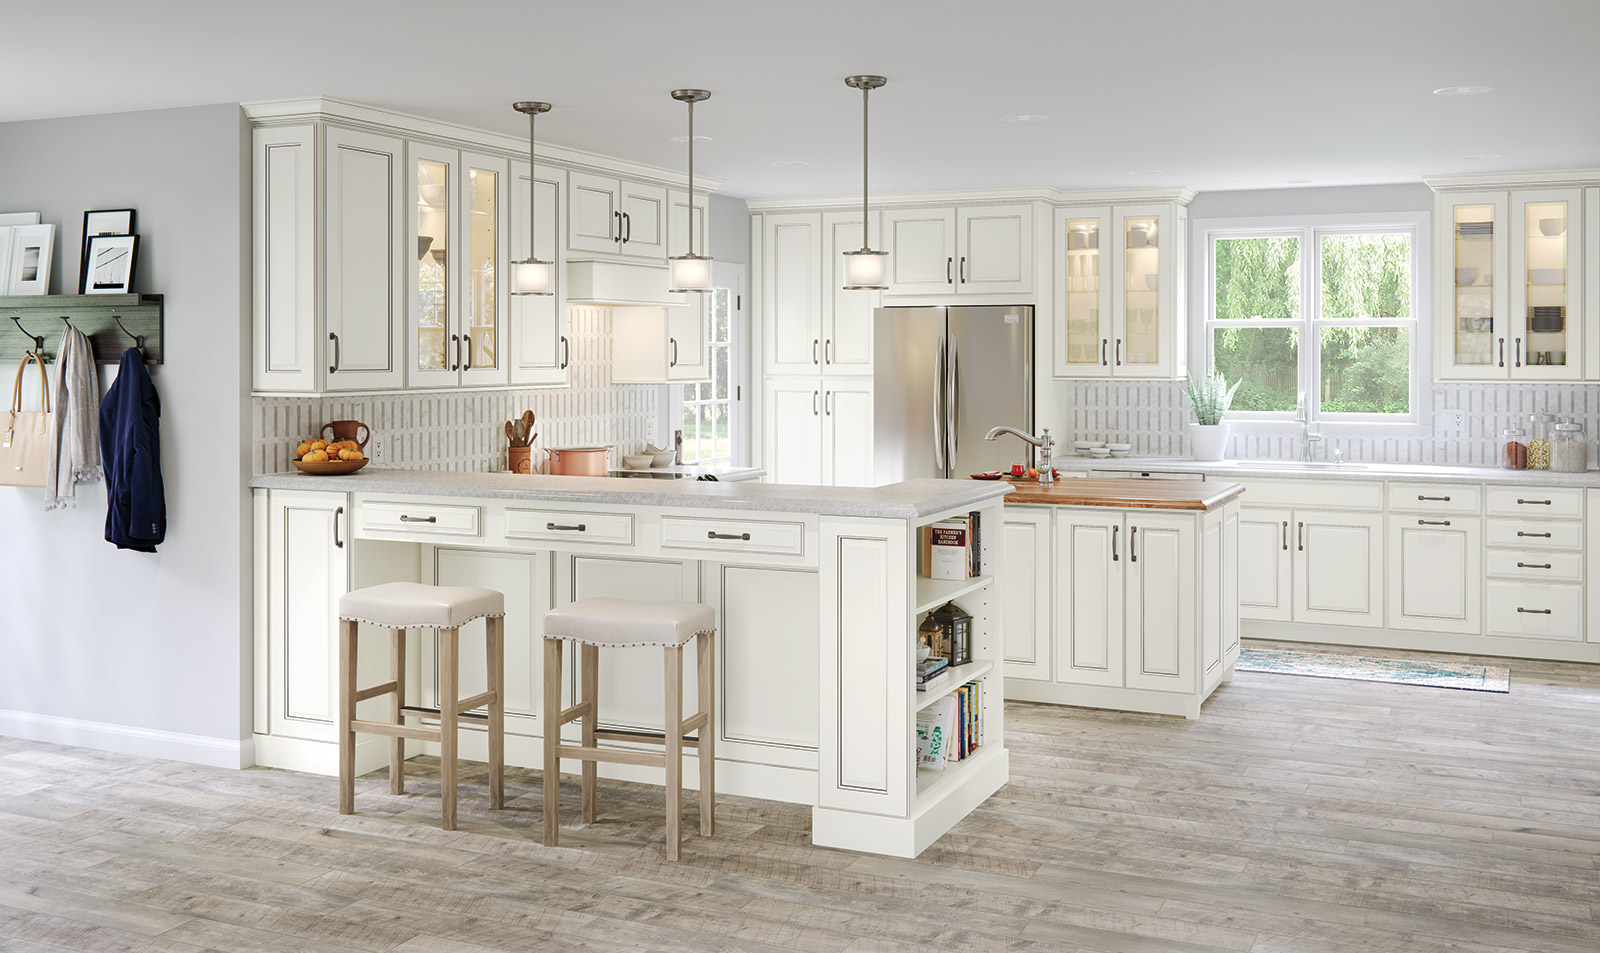 allen + roth Cabinetry Explore Kitchens